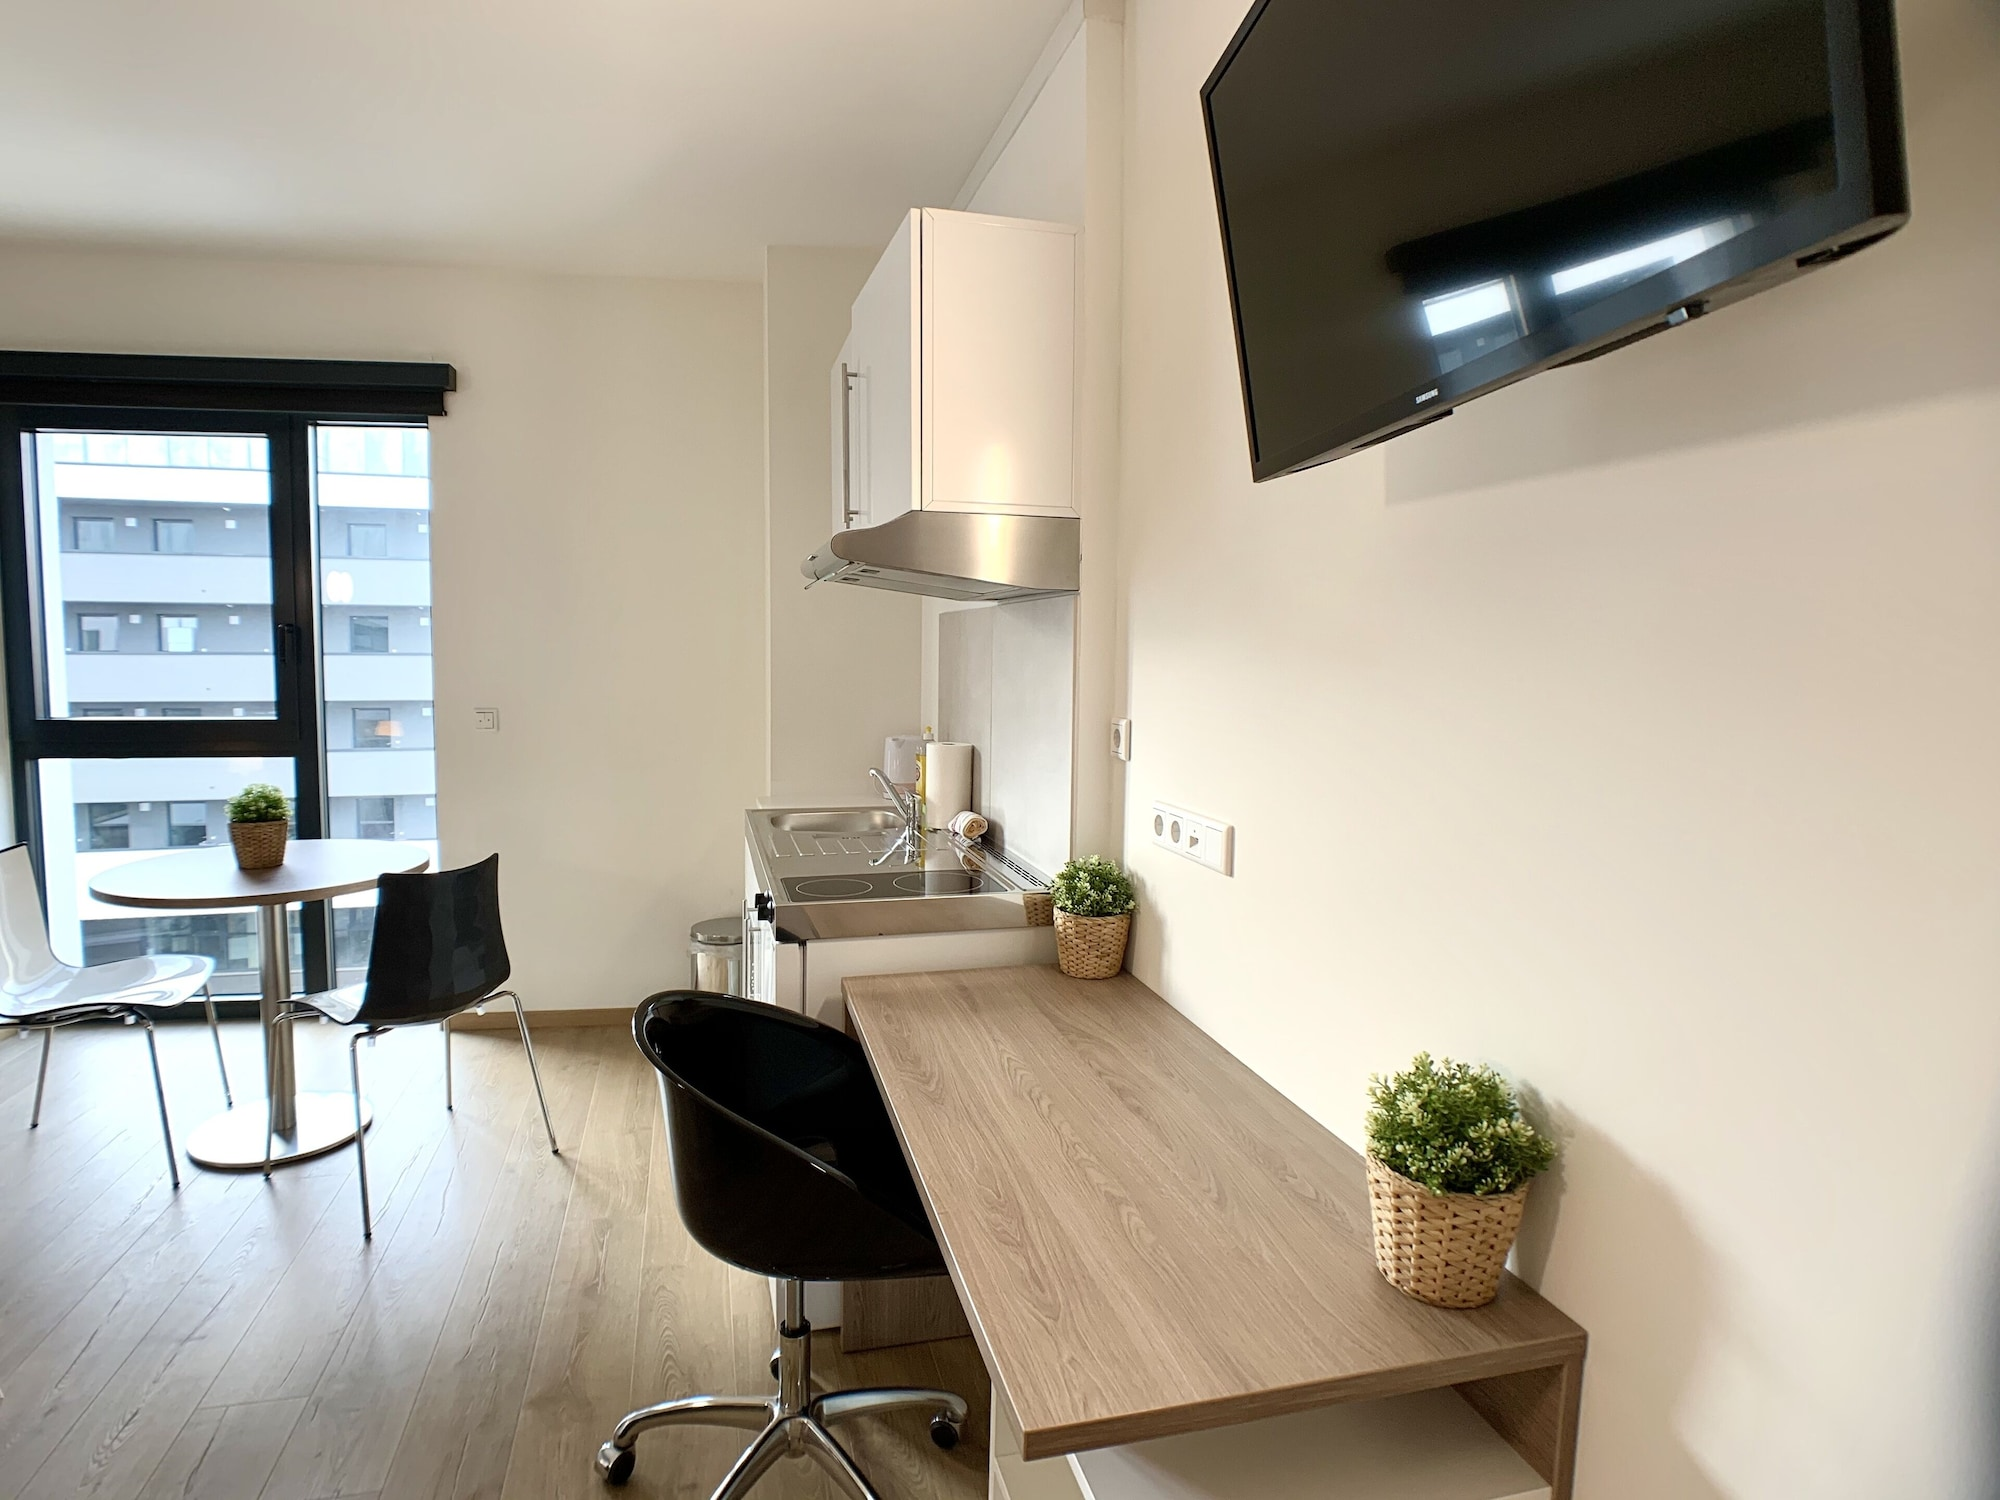 Fully Furnished Studio - City Center Belval, Esch-sur-Alzette